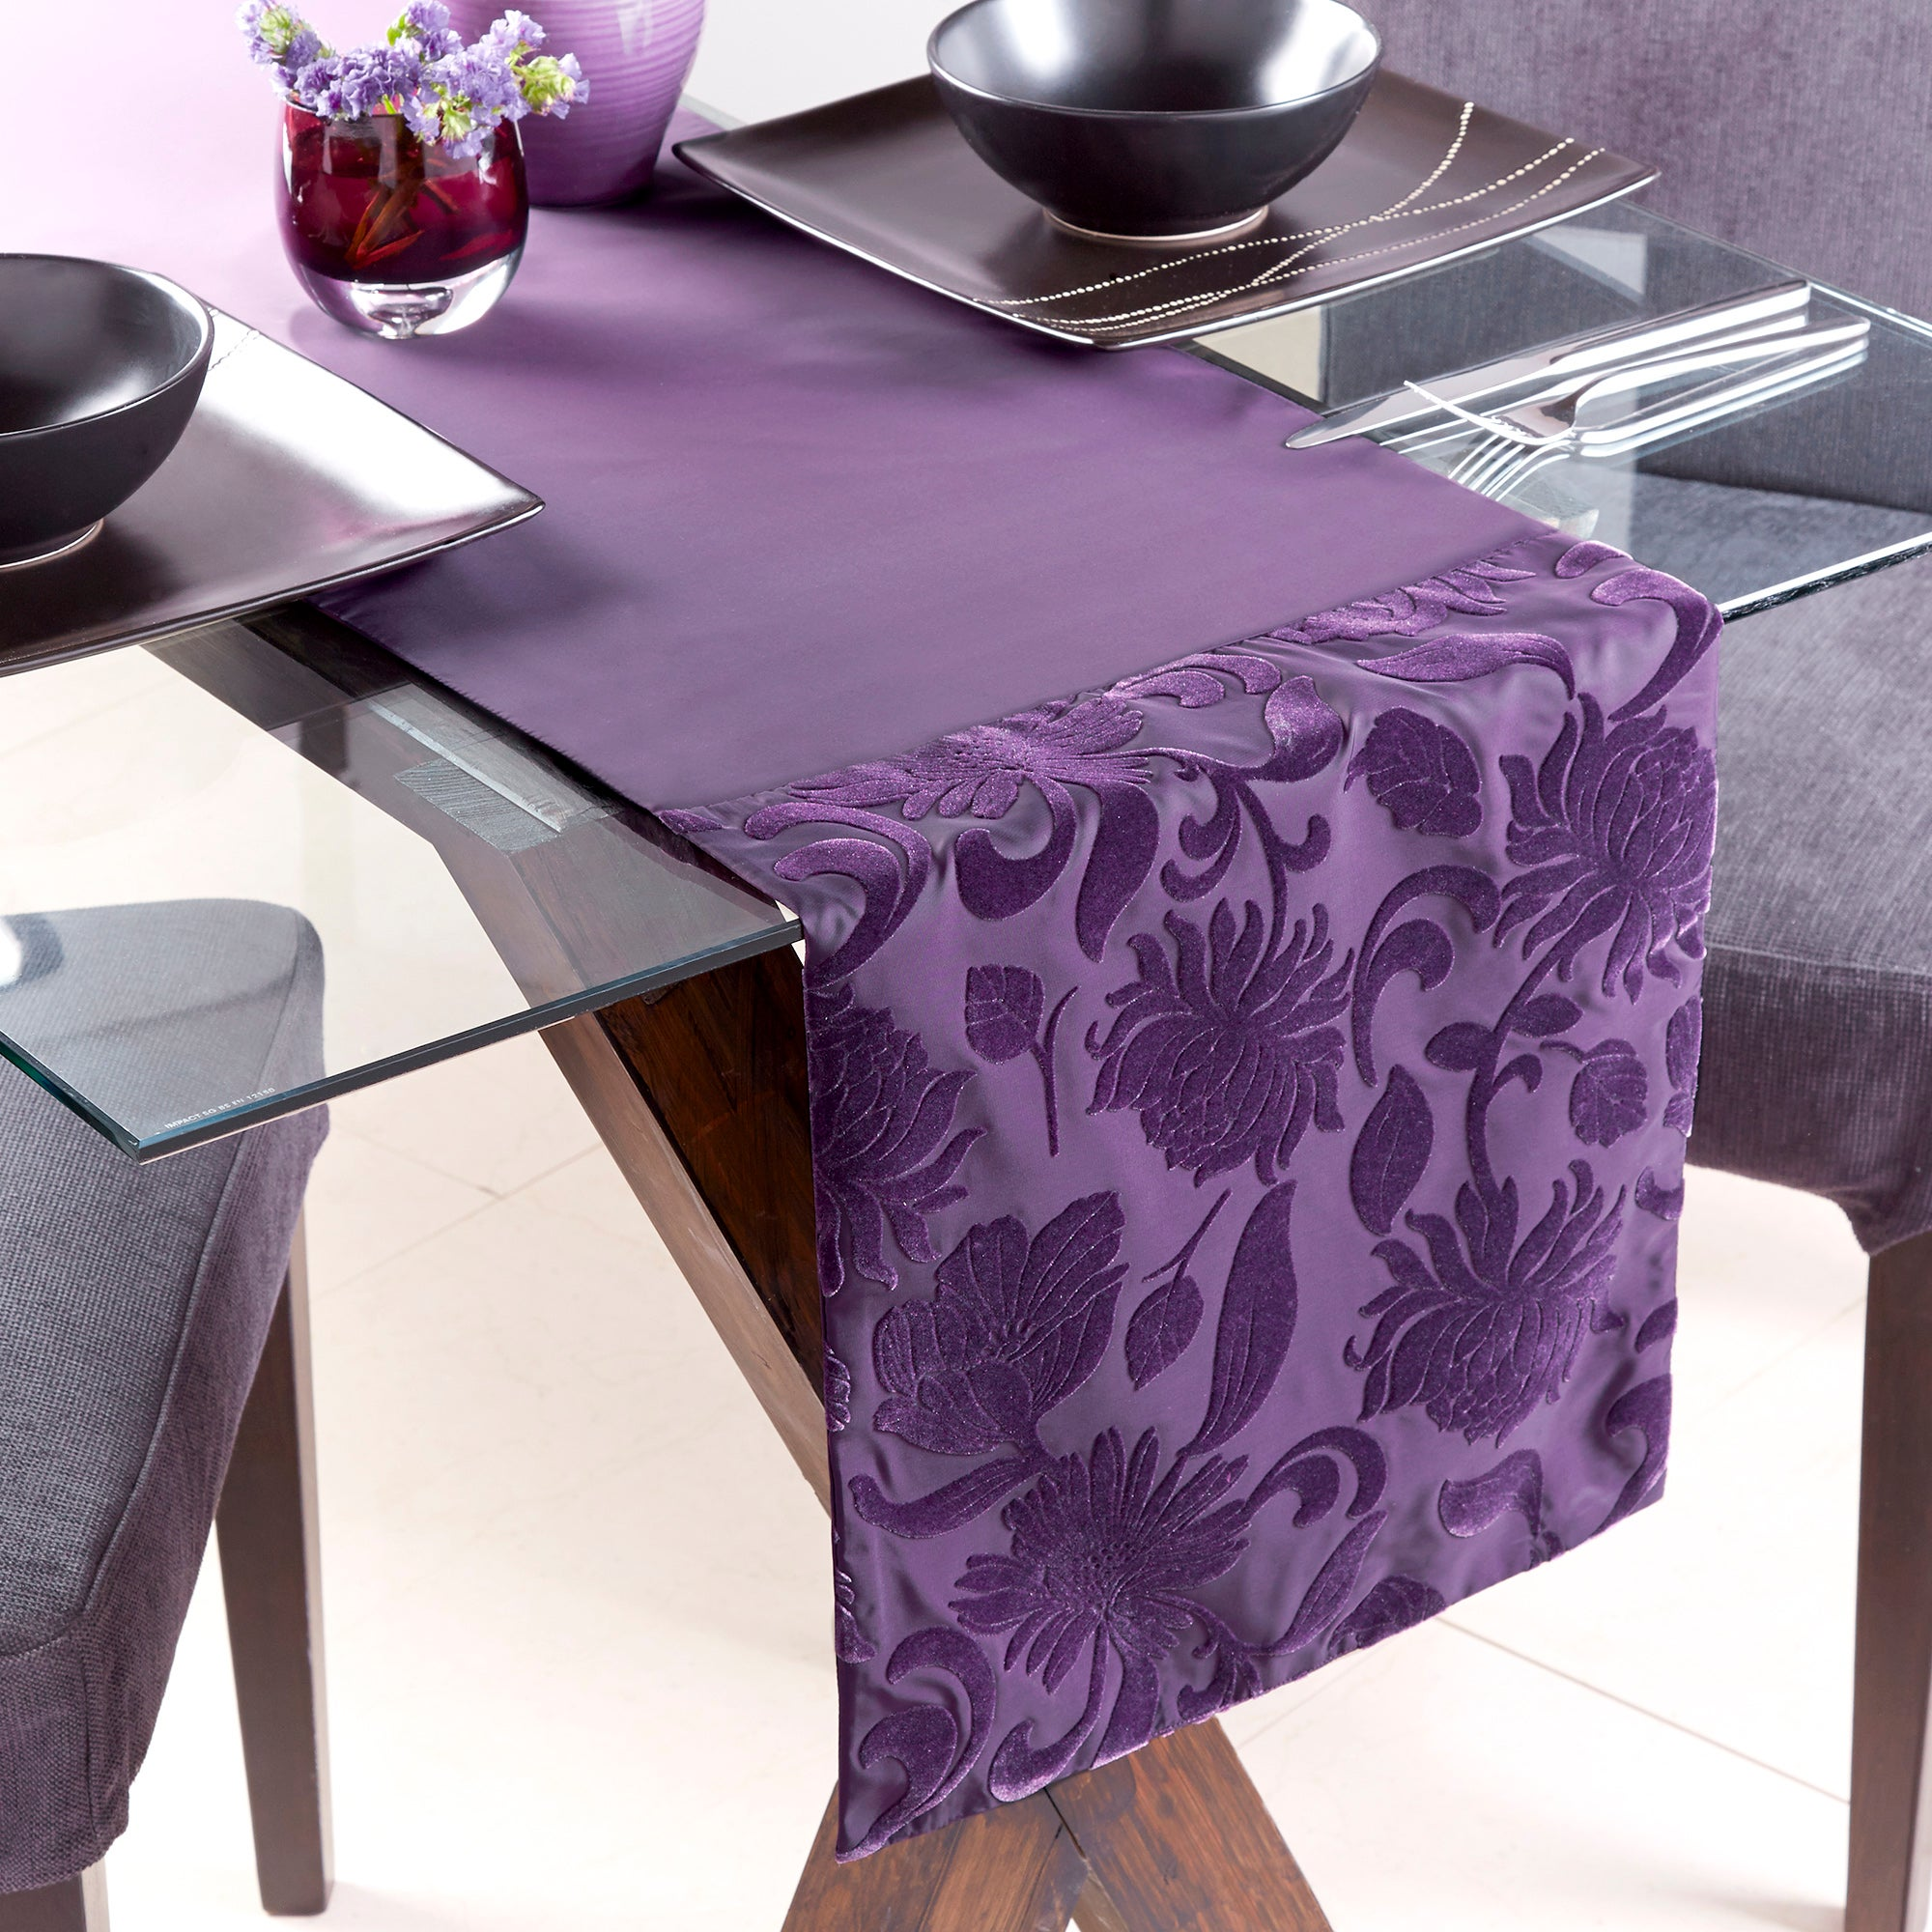 Plum Flock Floral Table Runner